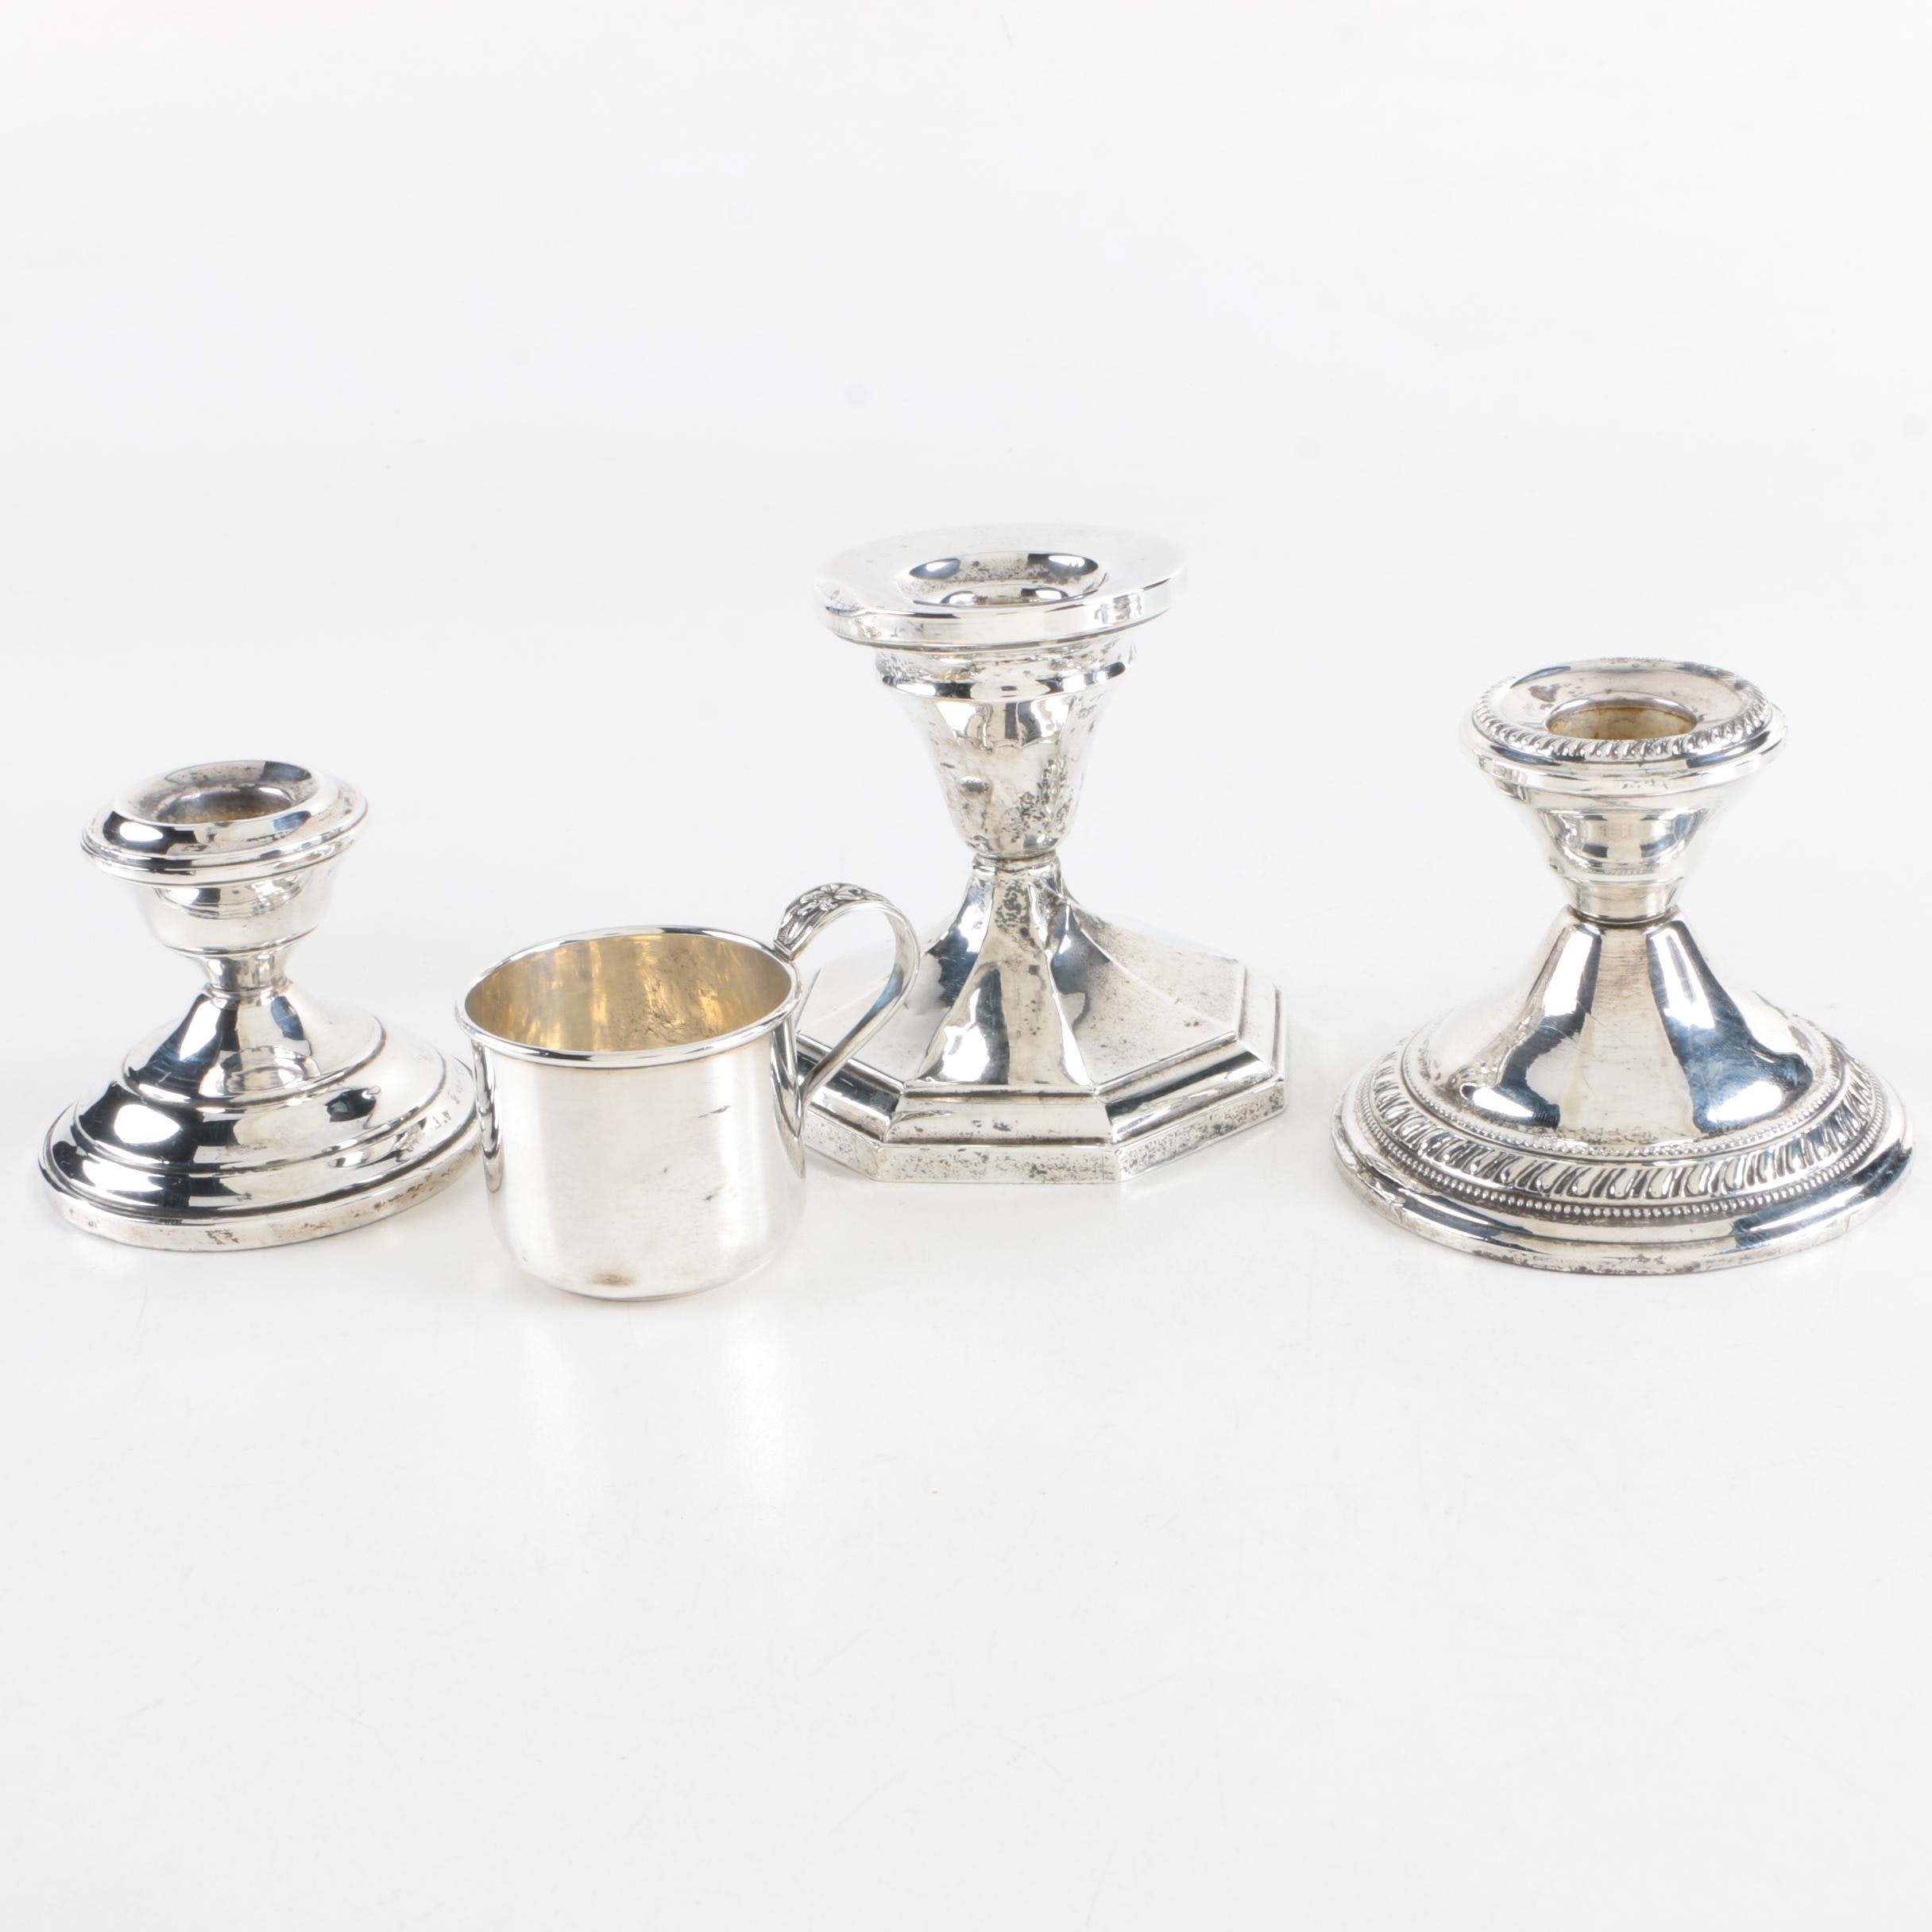 Frank M. Whiting & Co. Sterling Baby Cup with Weighted Sterling Candleholders